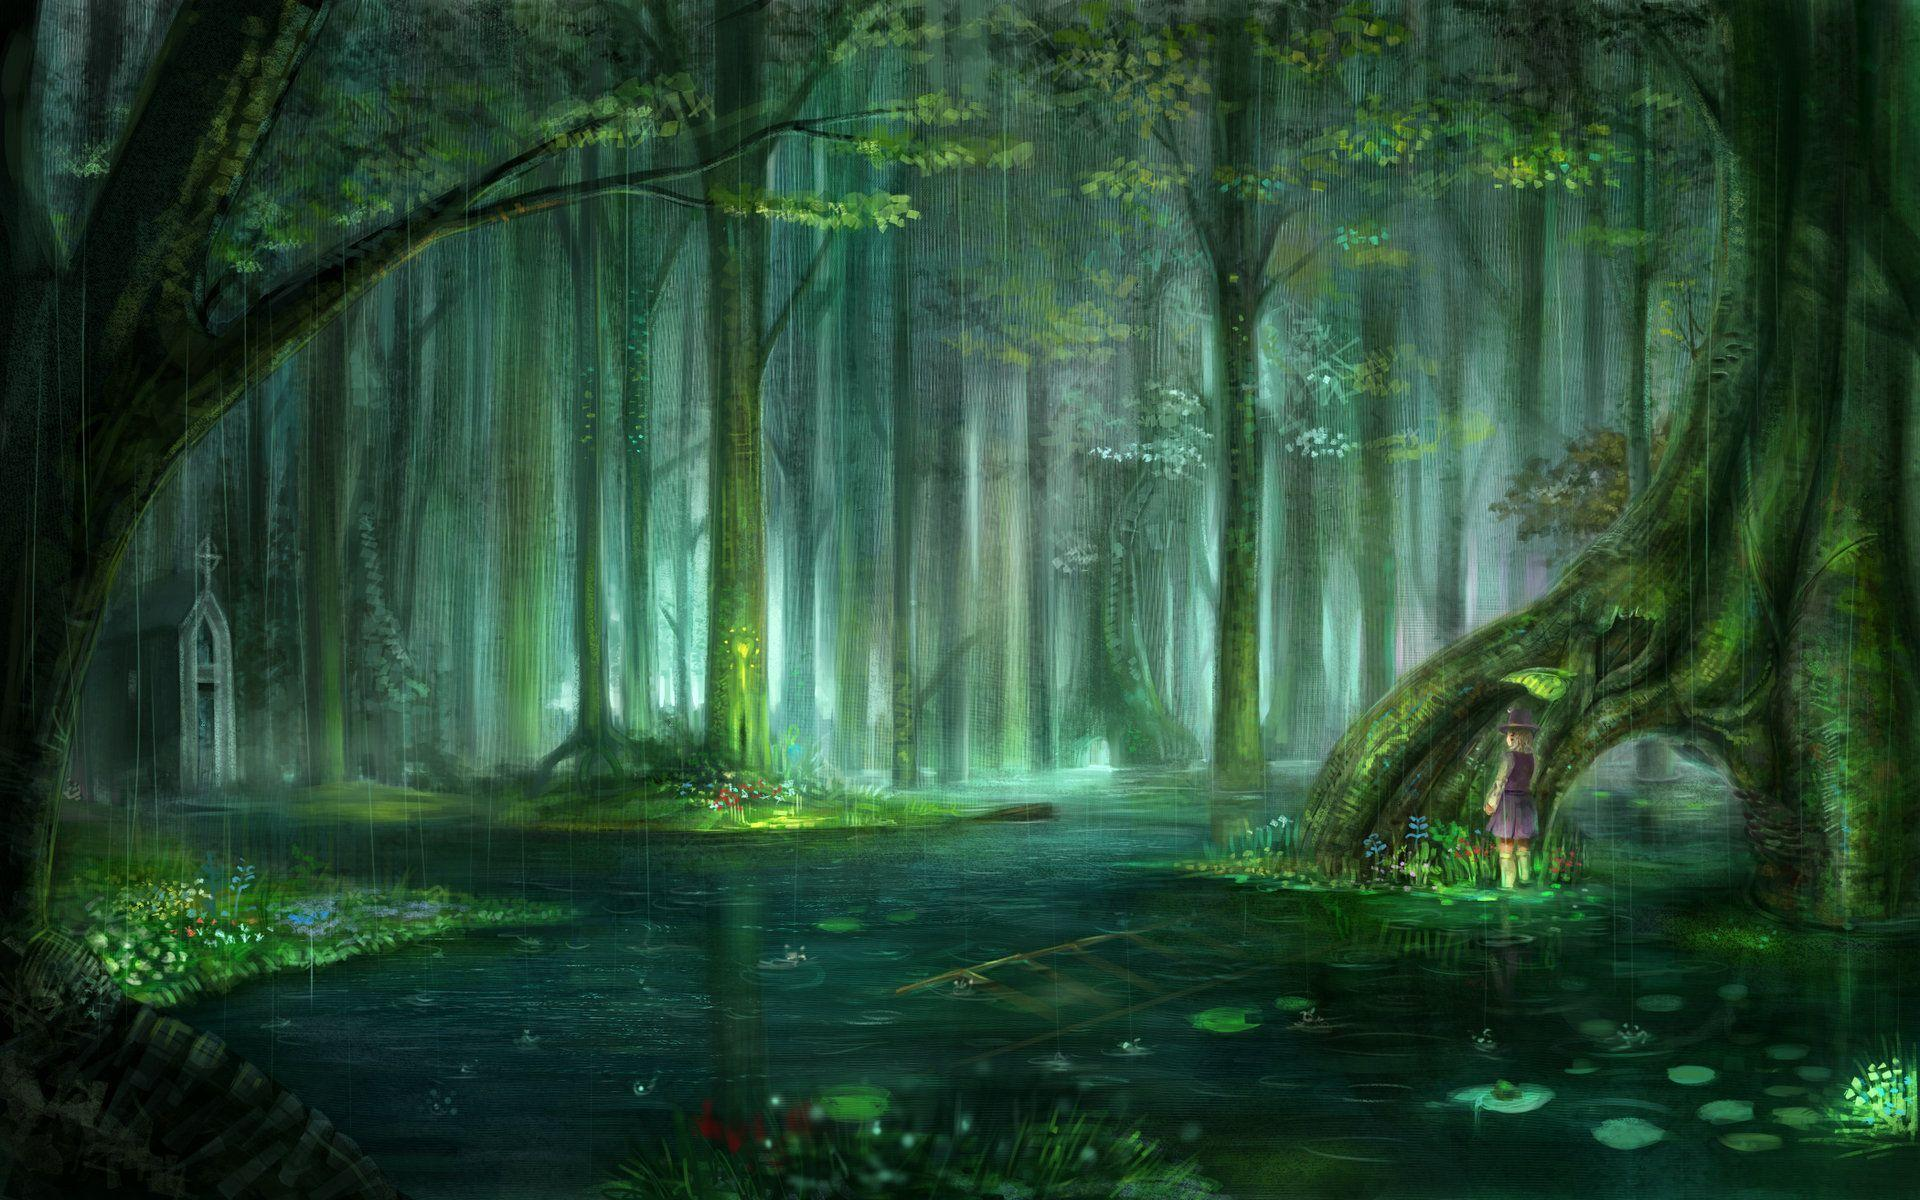 Enchanted Forest Backgrounds - Wallpaper Cave - photo#49